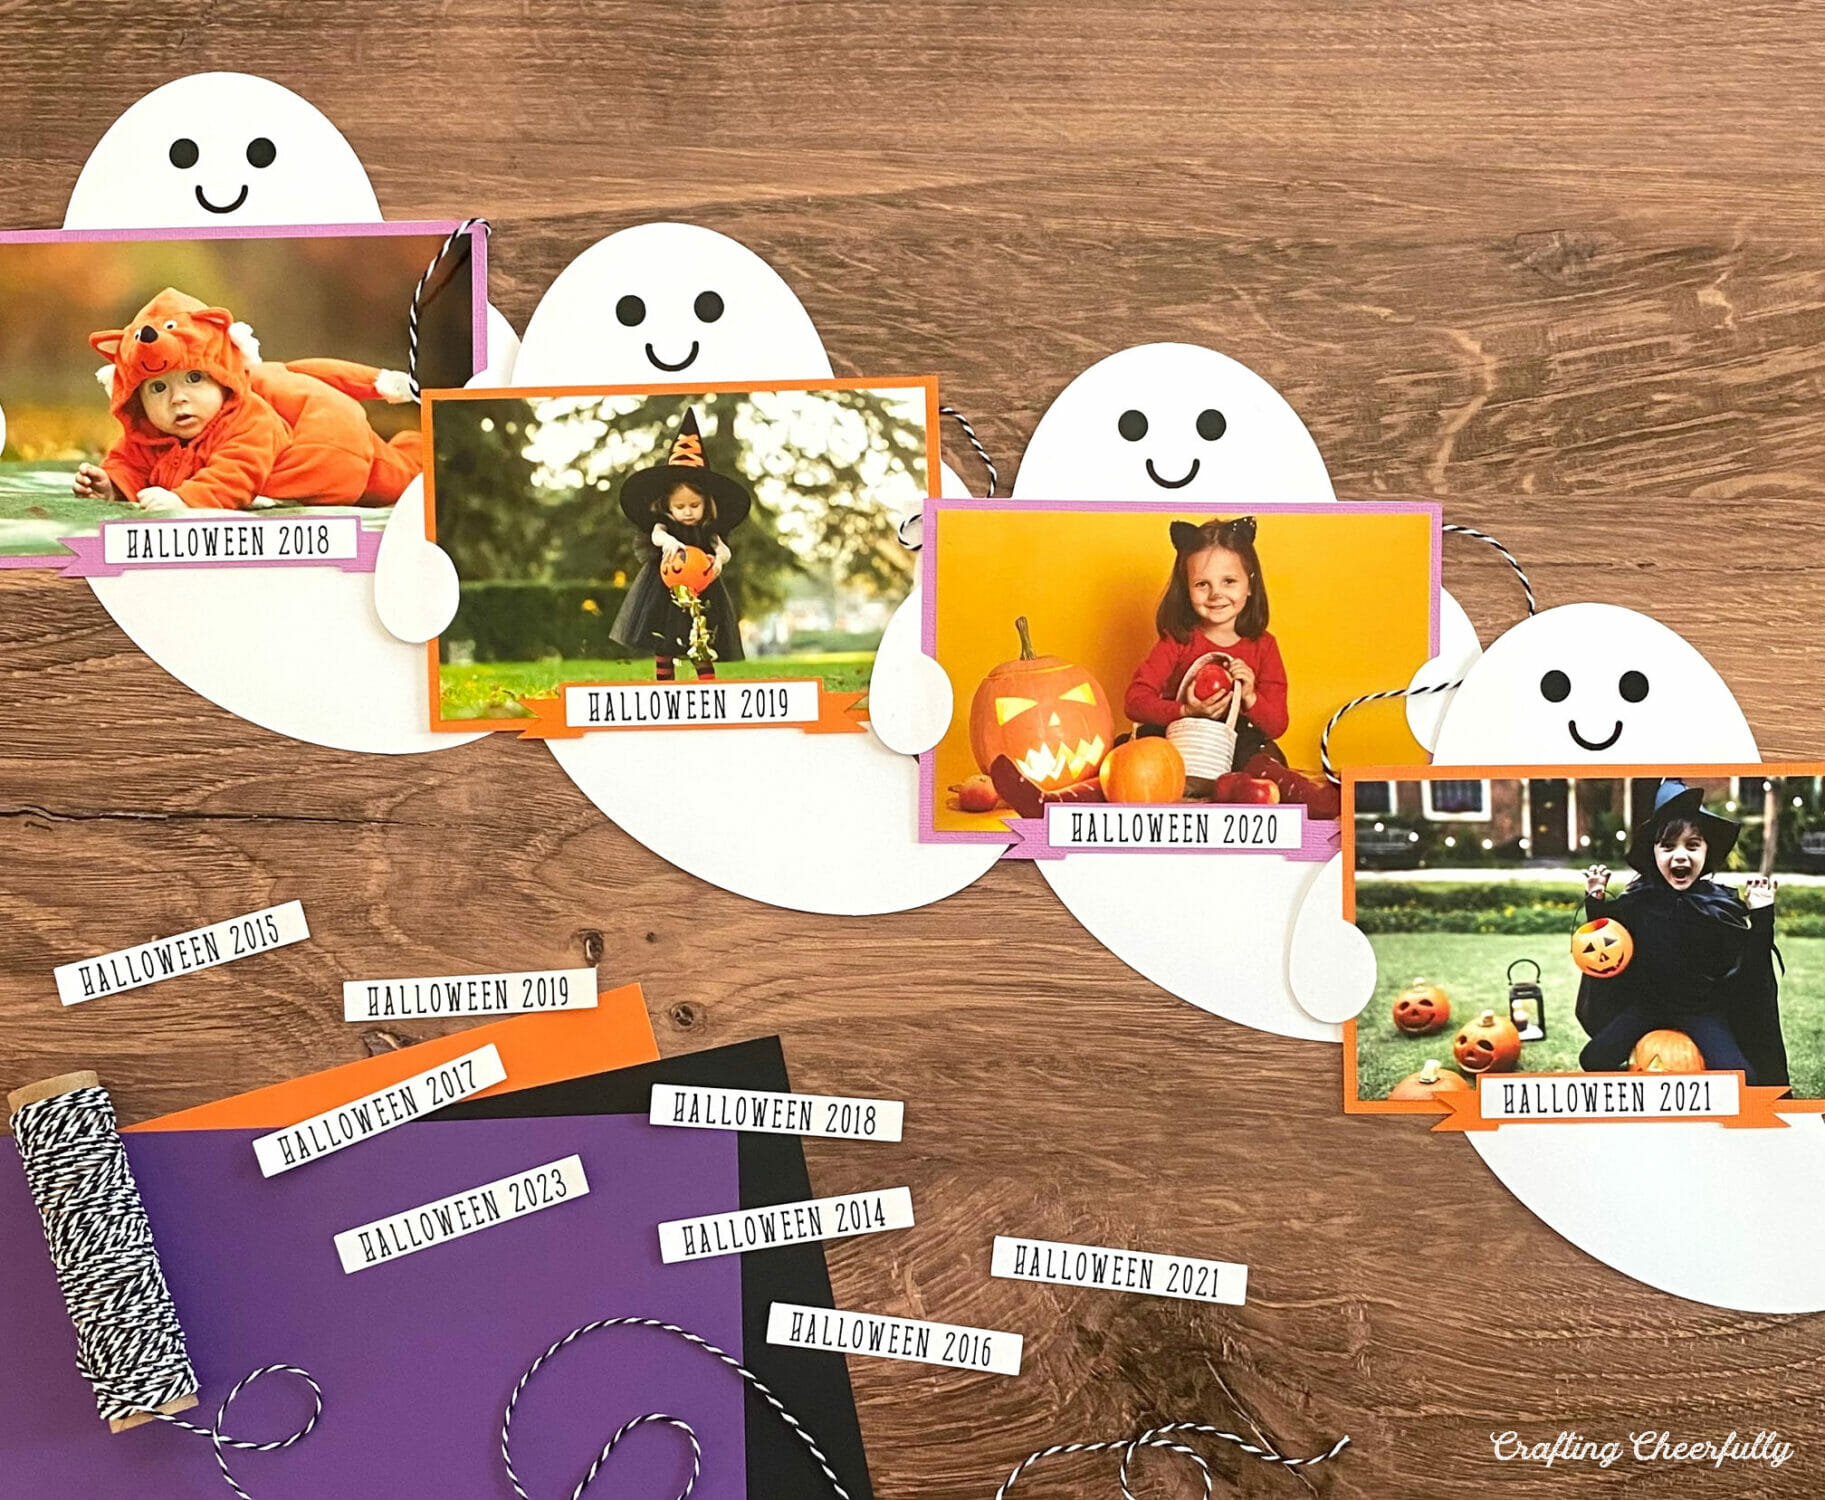 Halloween ghost banner with cute paper ghosts holding Halloween photos.